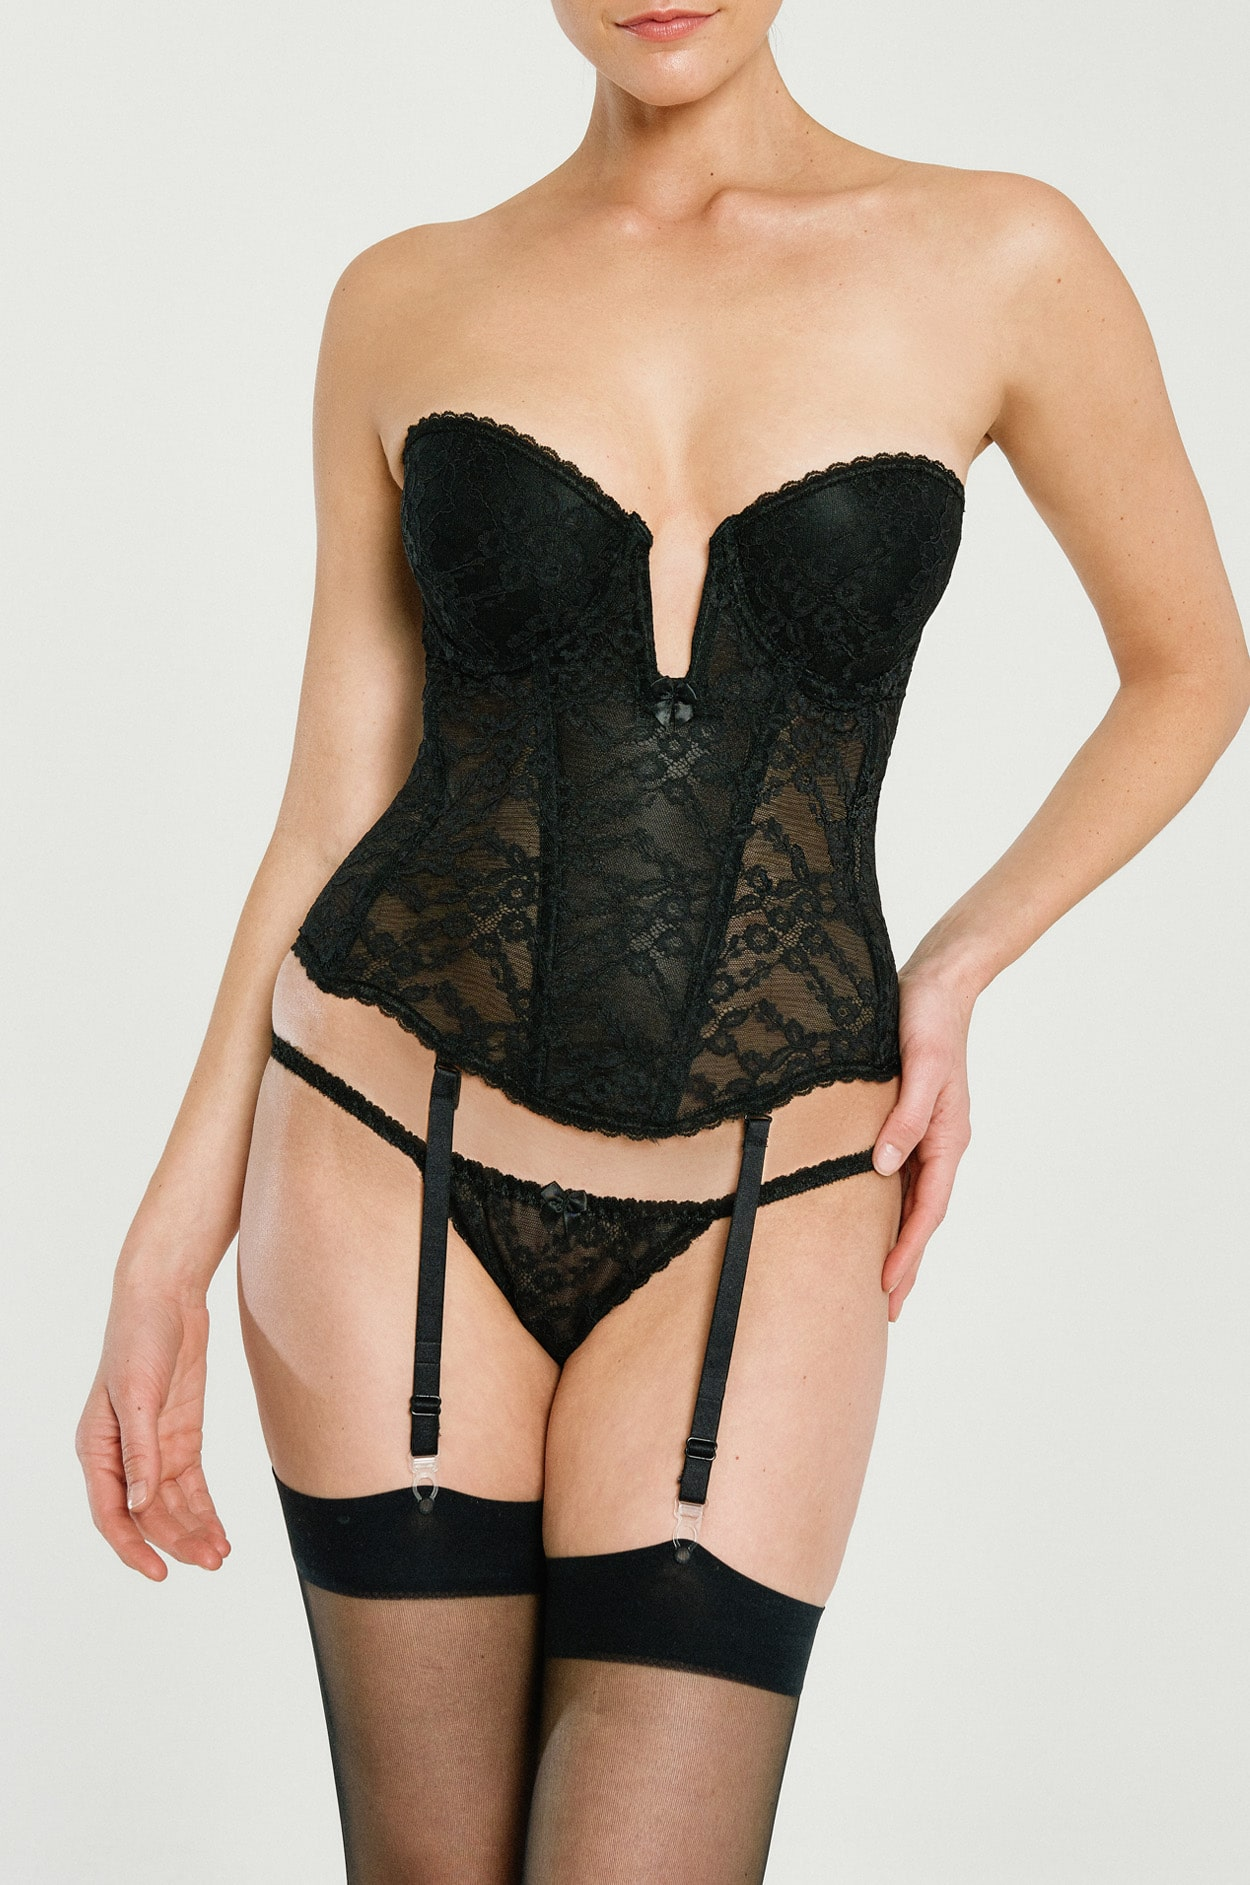 2cc60b6cd Plunge Bustier - Lace Shapewear, Best Push-up Waist Cinching Corset